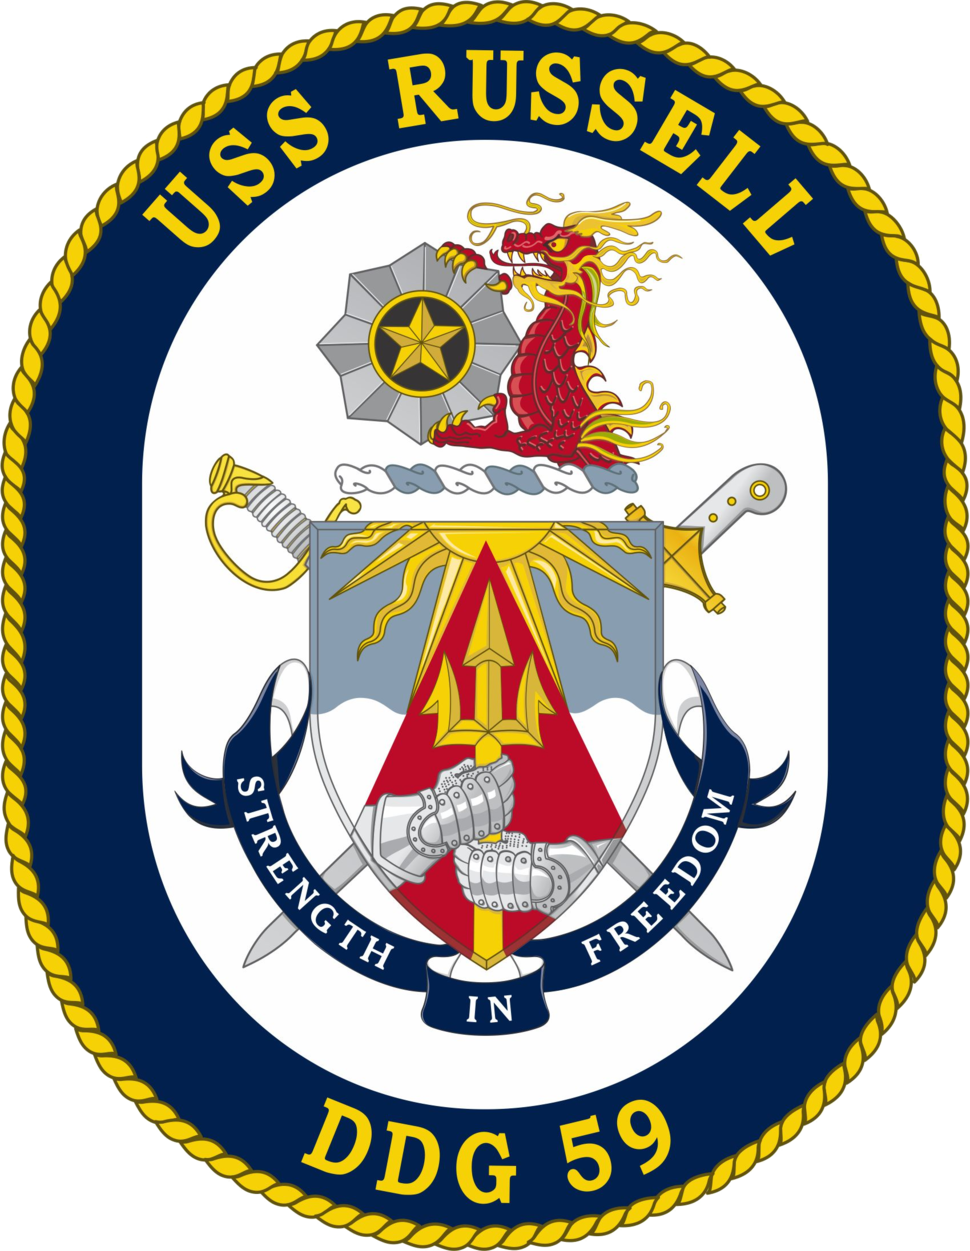 USS Russell DDG-59 Crest